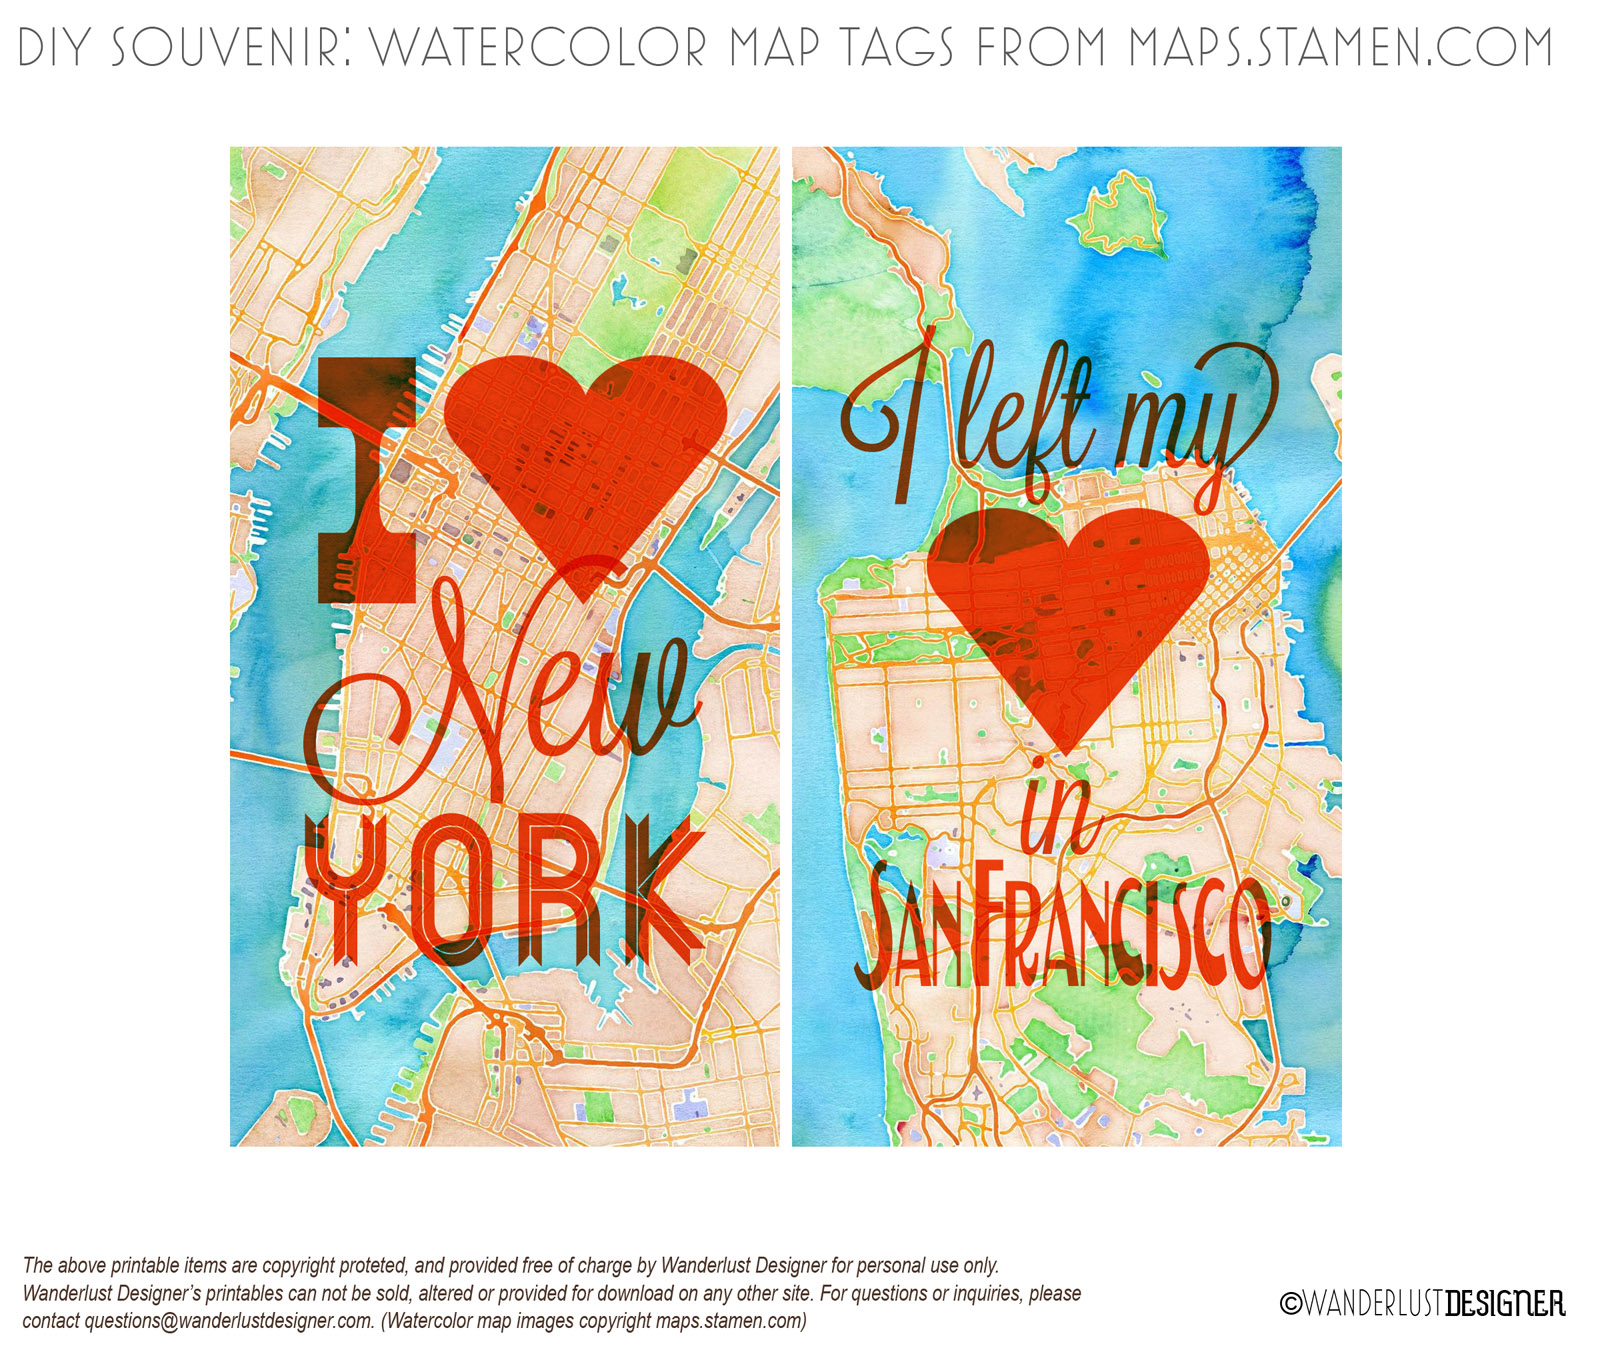 Printable San Francisco and New York City Watercolor Map Tags (map images by maps.stamen.com)